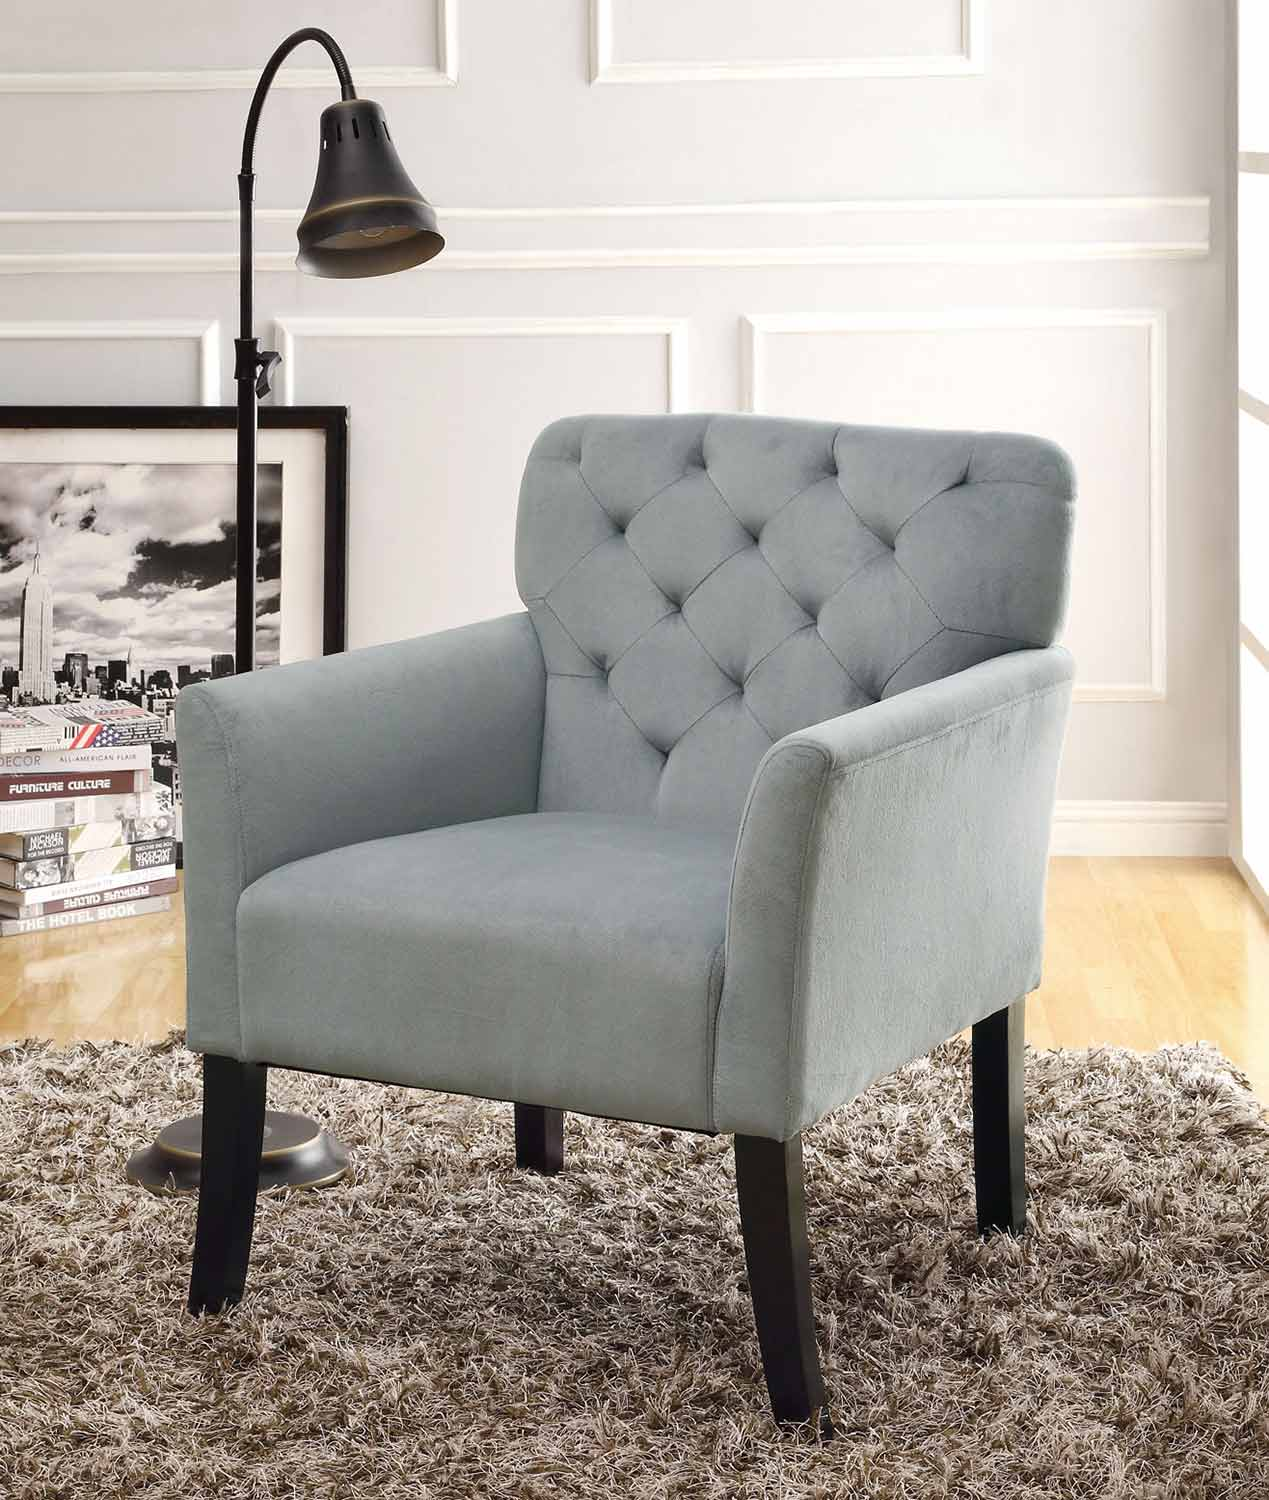 Coaster 902144 Accent Chair - Grey